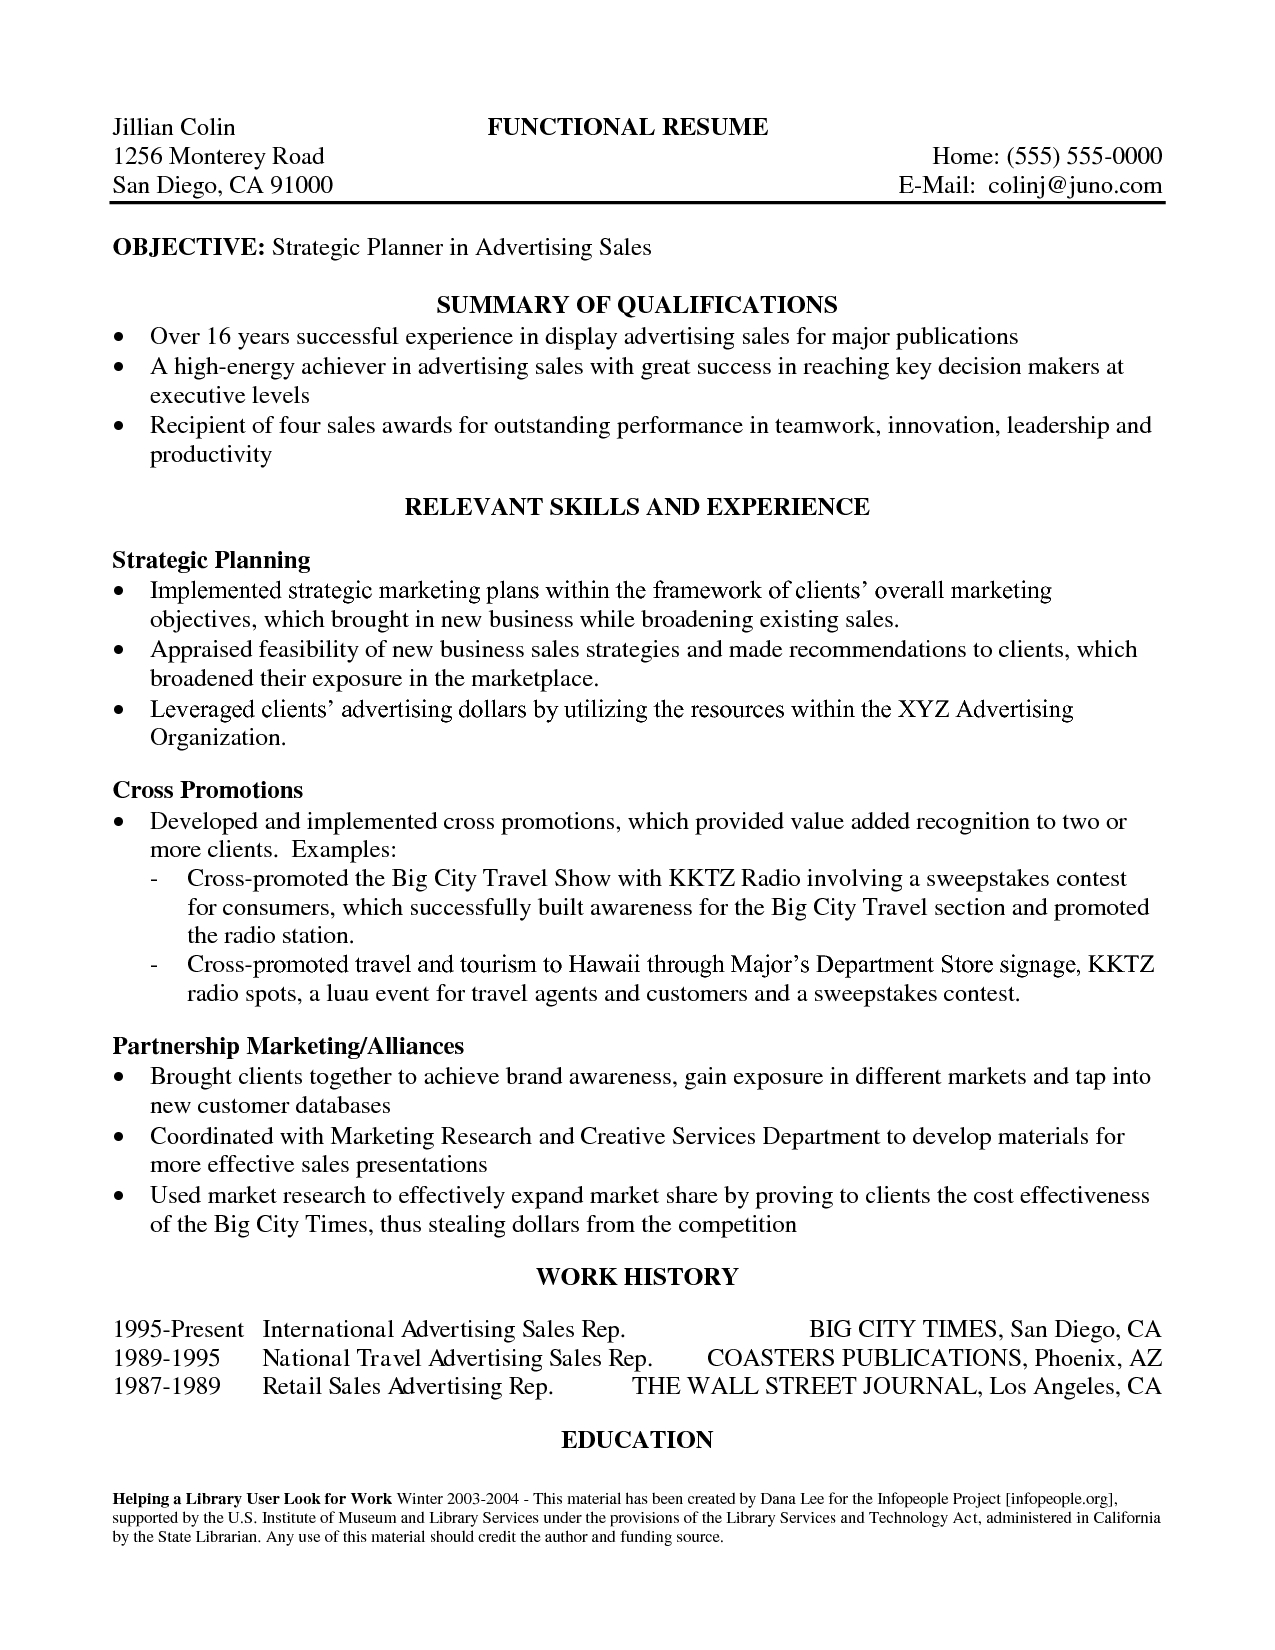 Marketing Resume Summary Statement Examples What Is A Summary Of Qualifications